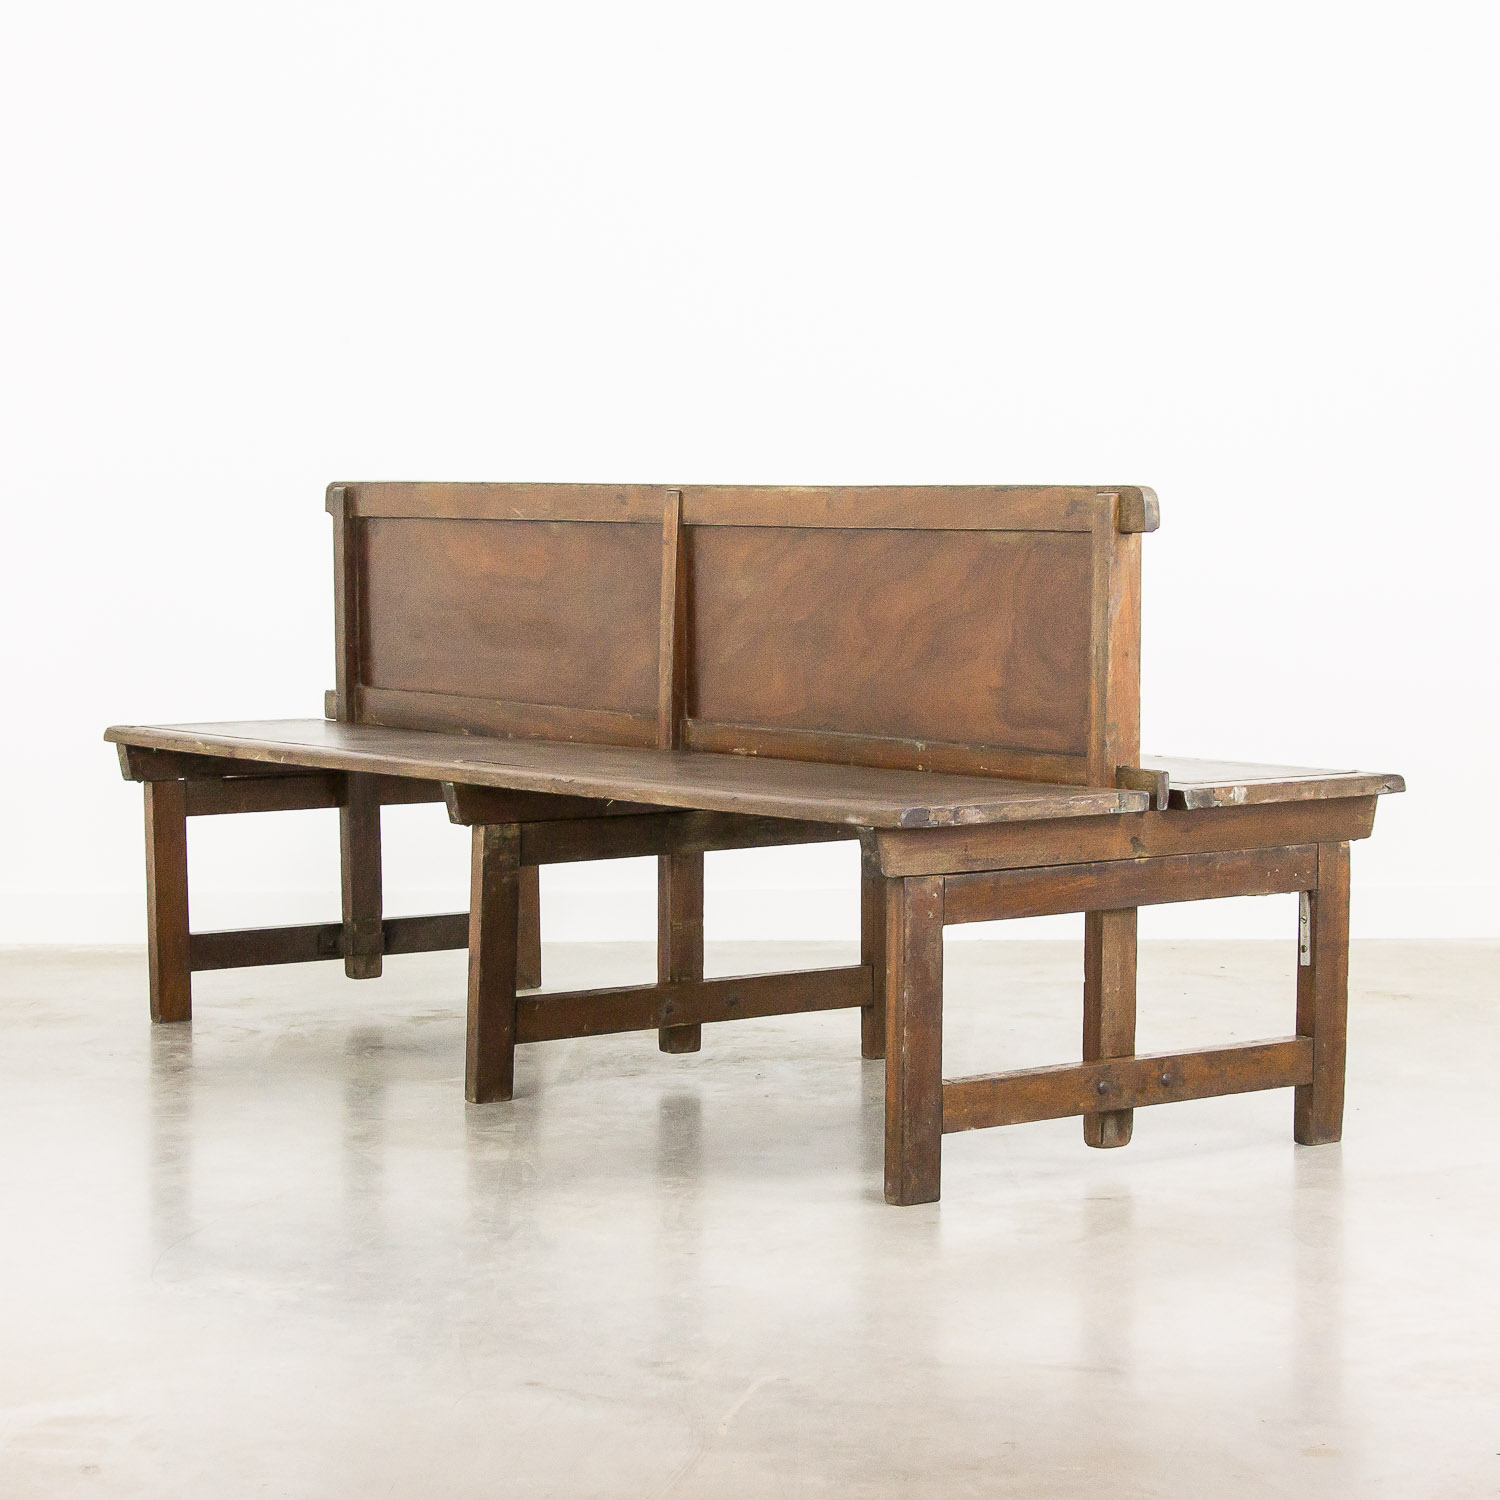 Double sided station bench